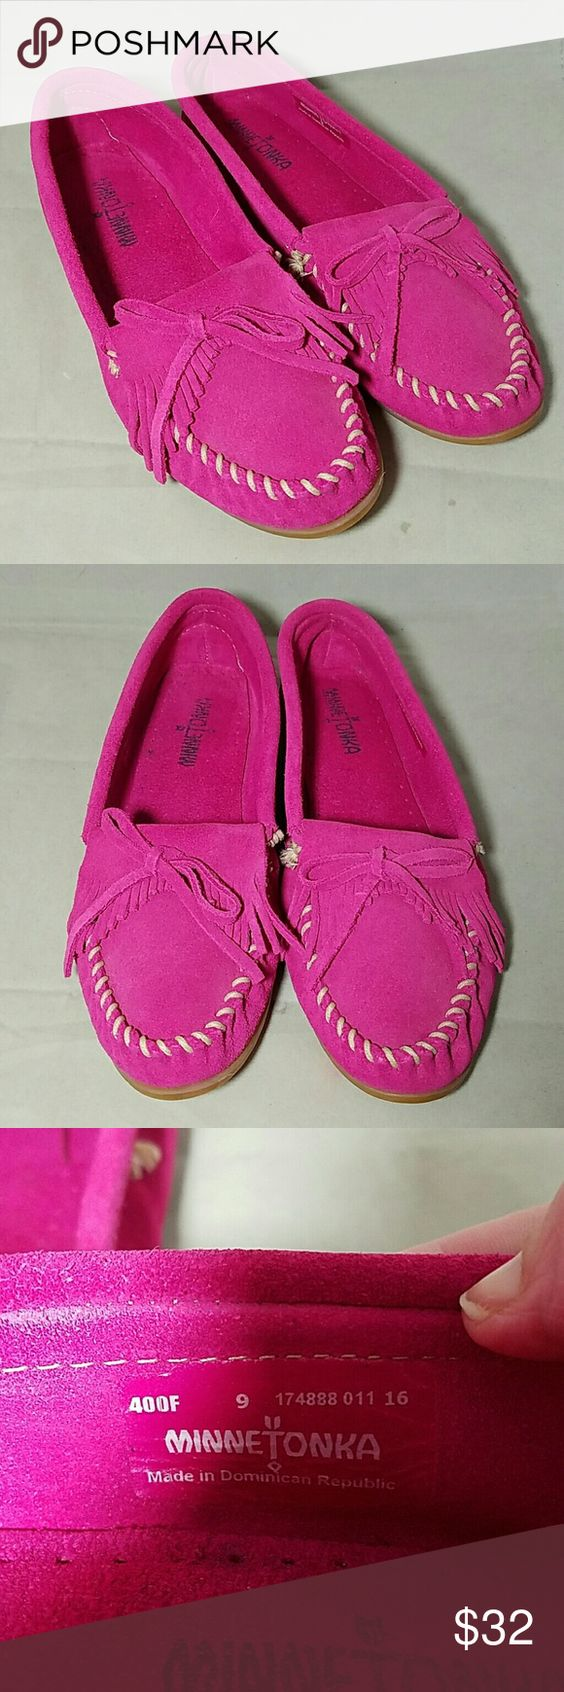 MINNETONKA Sz 9 Hot Pink Suede Moccasin Flats Brand: Minnetonka  Item: *Size 9 Hot Pink or Fuschia Slip On Moccasins Flats *Suede Material *Cream Stitching *Fringe & a Bow on Top of Each Foot  Color: Hot Pink & cream  Size: 9  Condition: Worn just a few times, excellent pre-loves condirion Minnetonka Shoes Moccasins